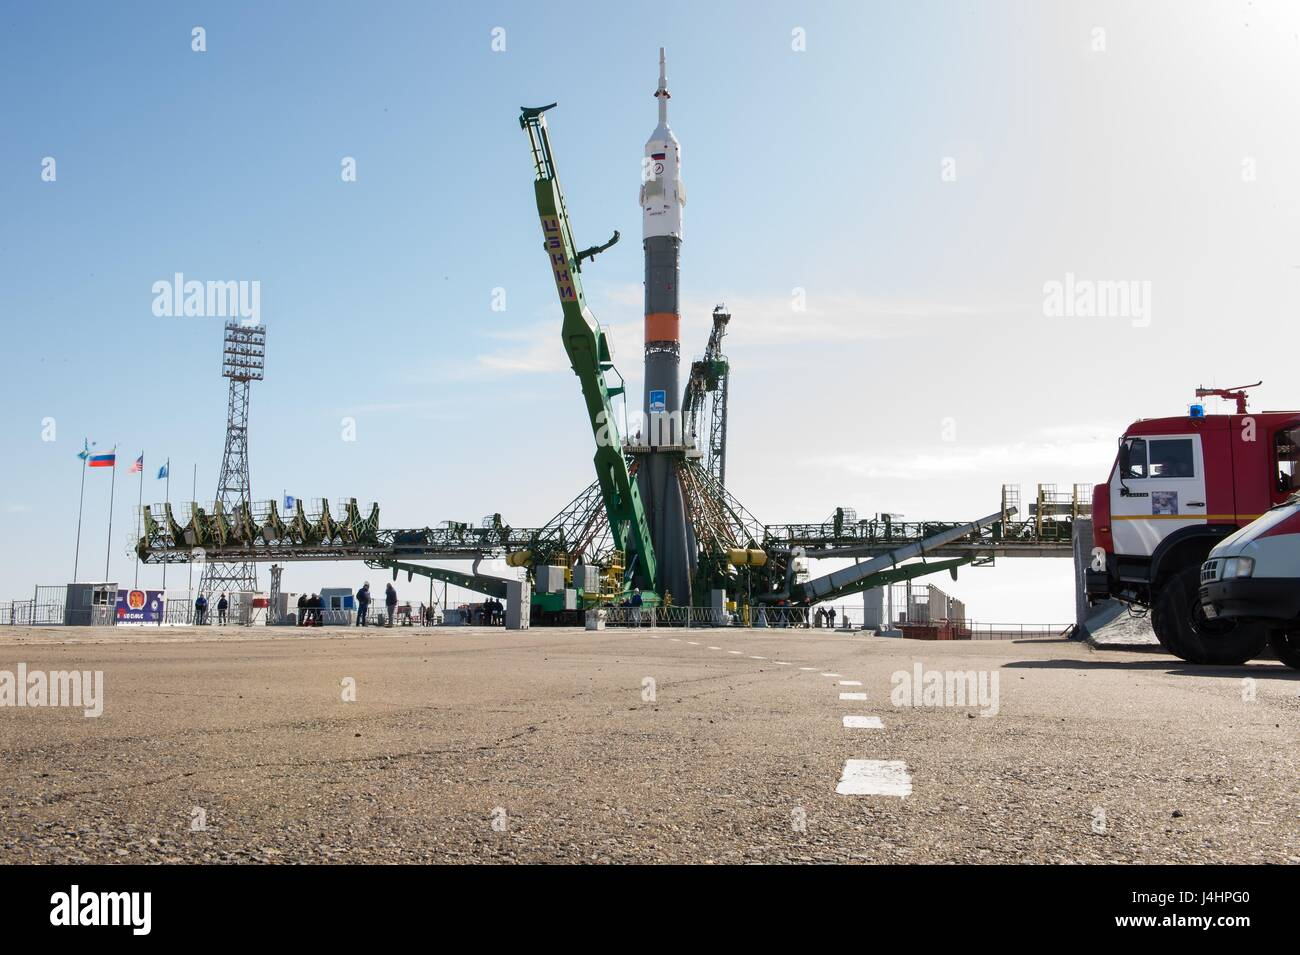 The Soyuz MS-04 spacecraft rocket is raised into the vertical position at the Baikonur Cosmodrome launch pad in - Stock Image